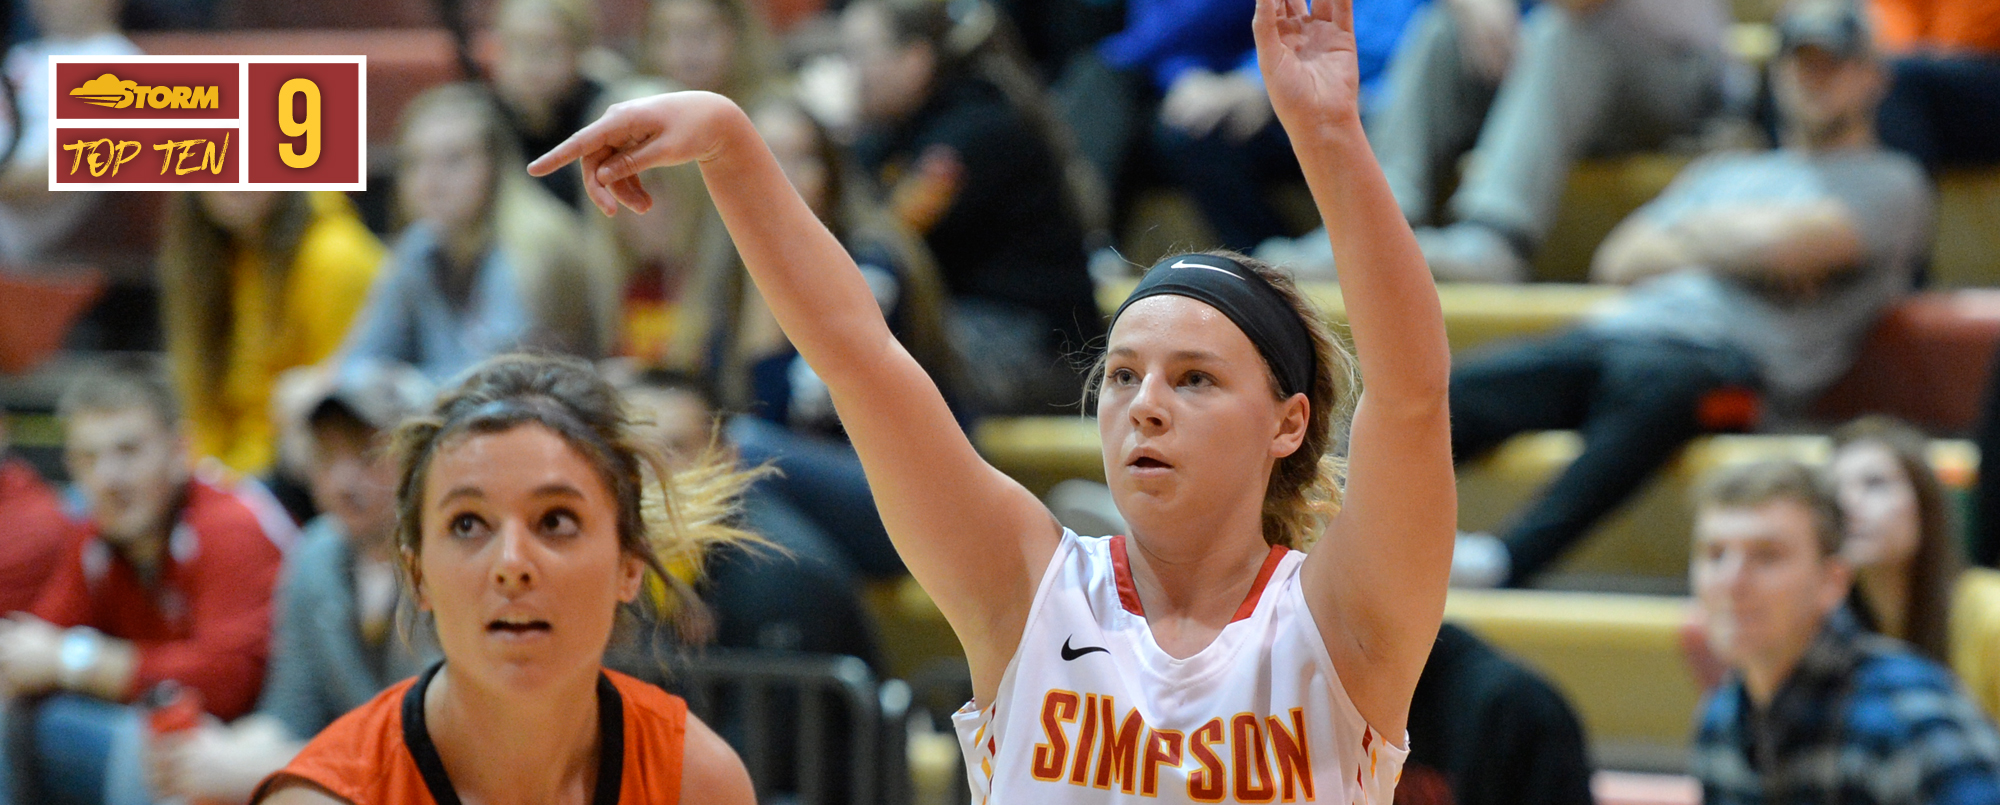 #StormTop10 Individual Performances No. 9: Botkins nails seven 3s